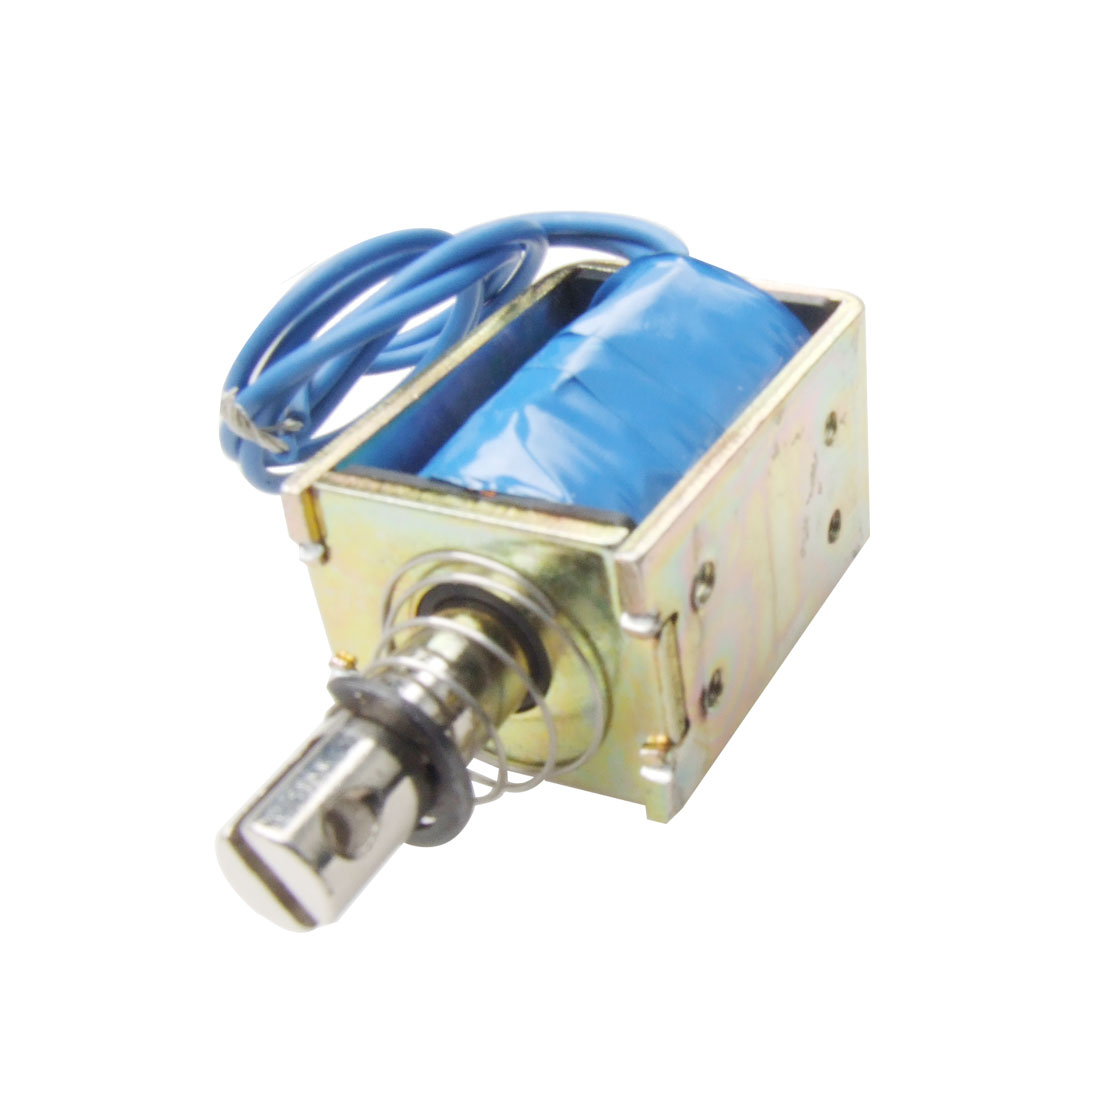 DC 24V 1A Open Frame Linear Push Type Solenoid Electromagnet 15N Holding